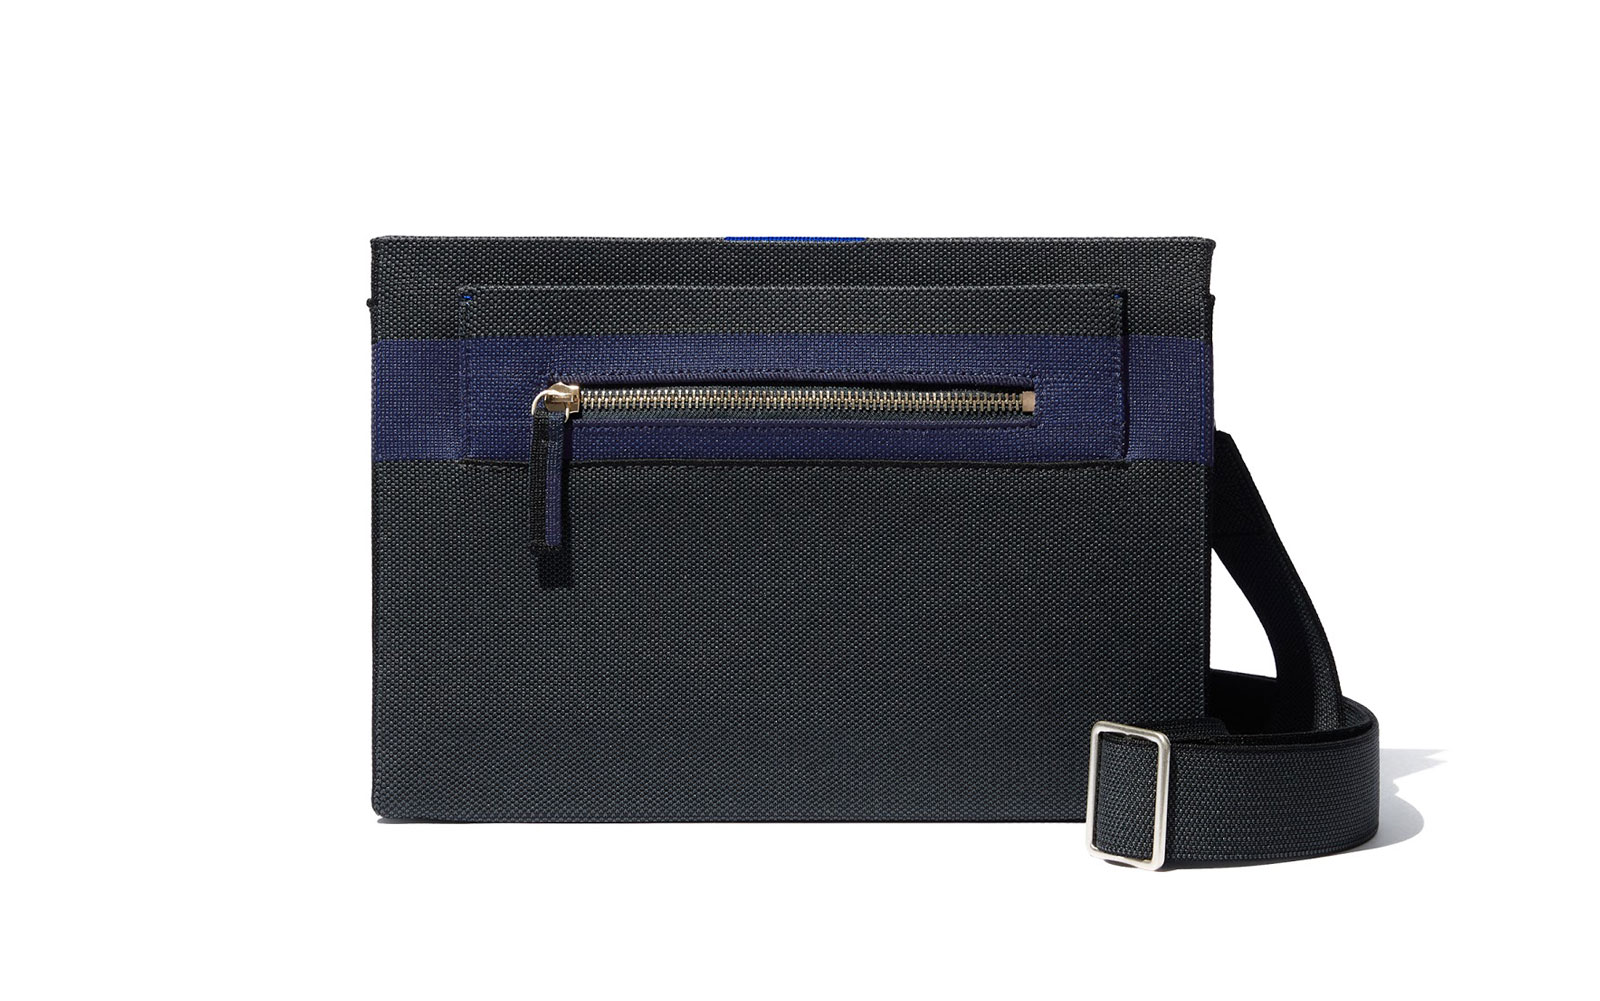 Black and navy zippered crossbody bag